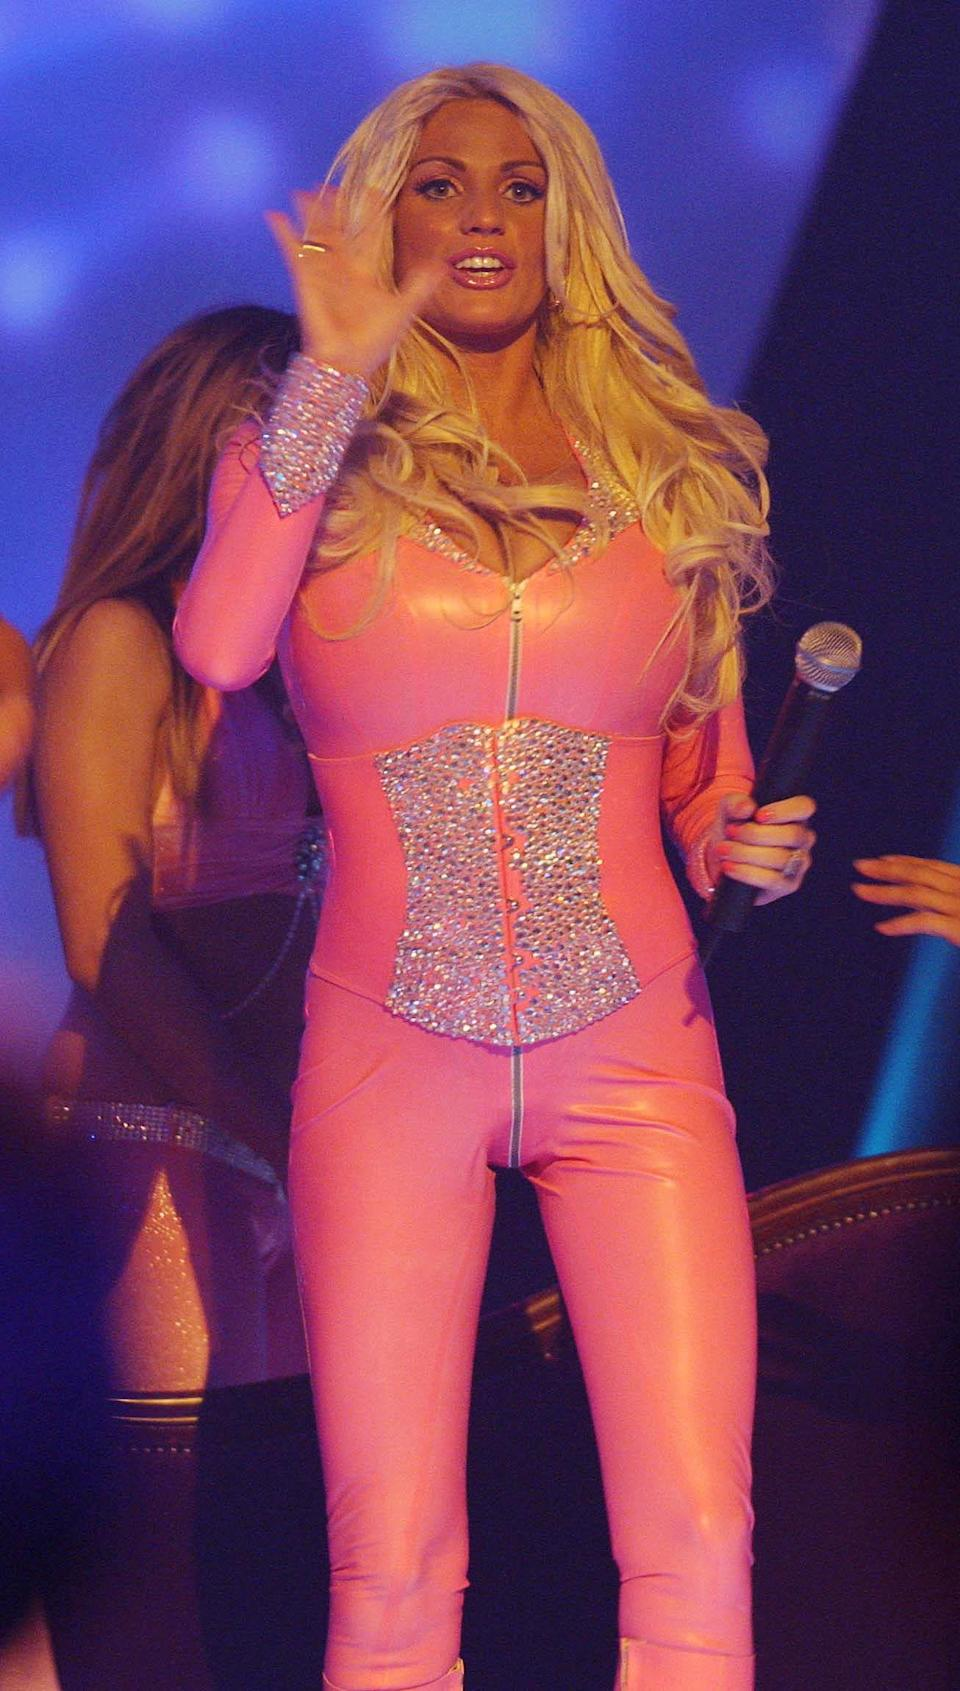 Pregnant Katie Price (Jordan) performs onstage.   (Photo by Yui Mok - PA Images/PA Images via Getty Images)